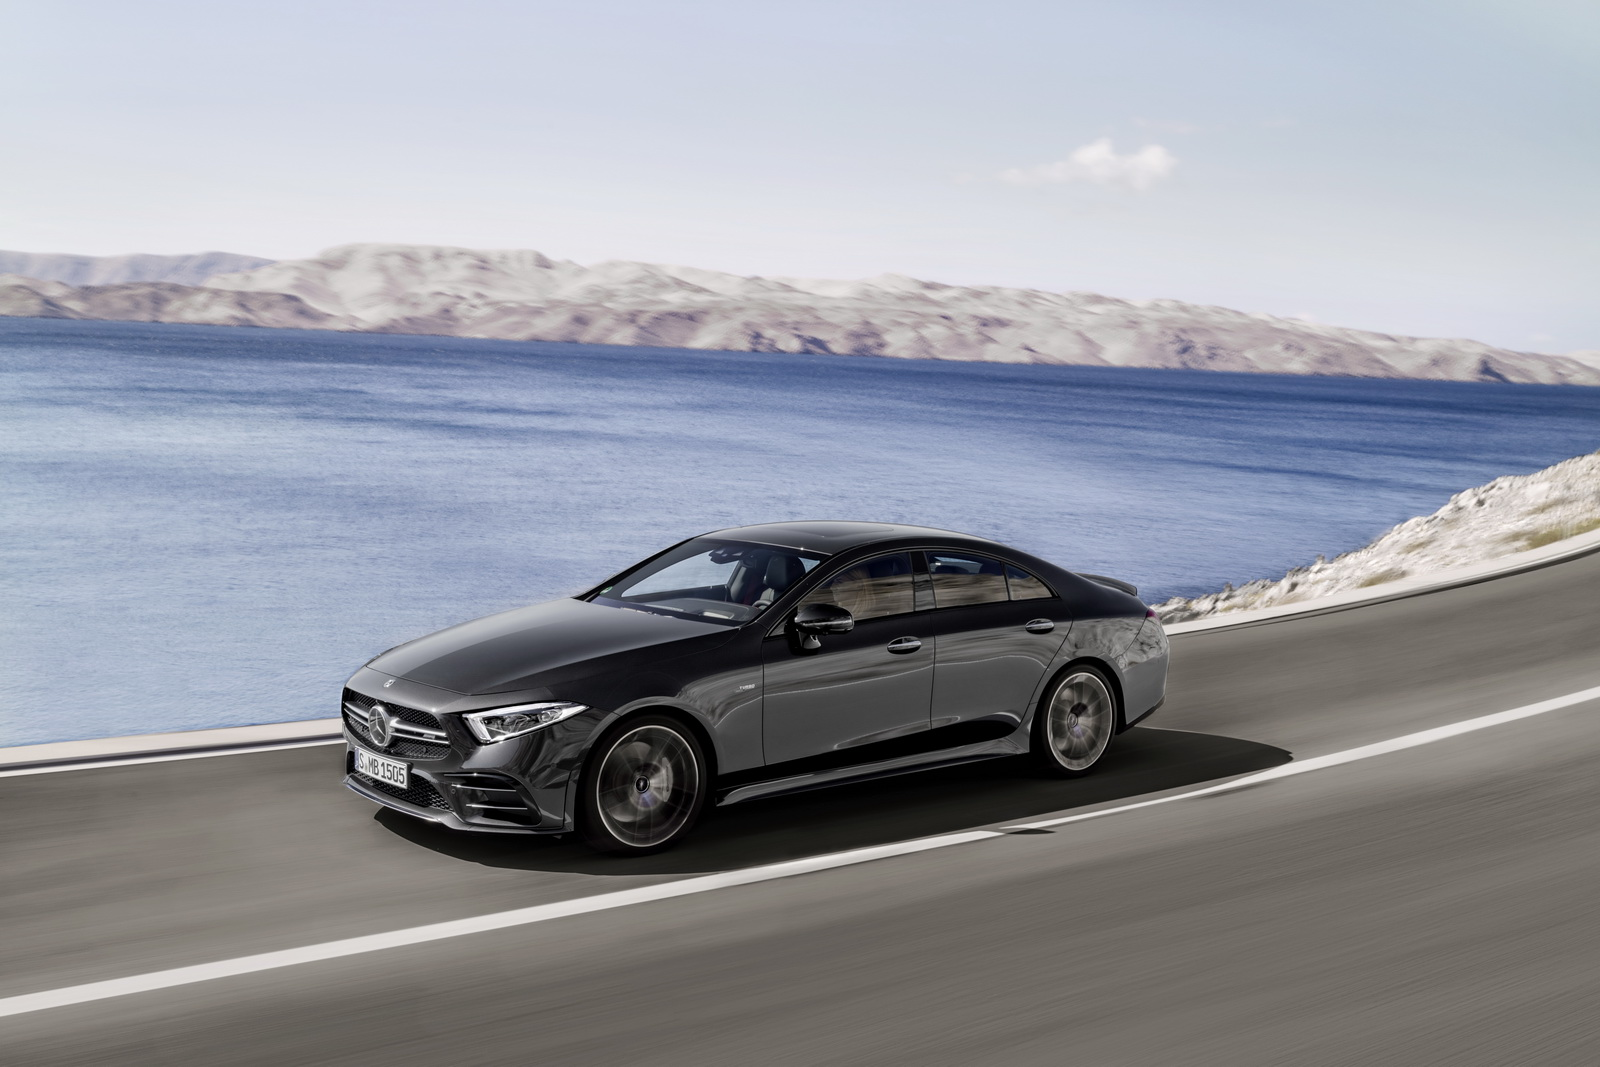 Detroit Motor Show: Mercedes-AMG launches '53' range